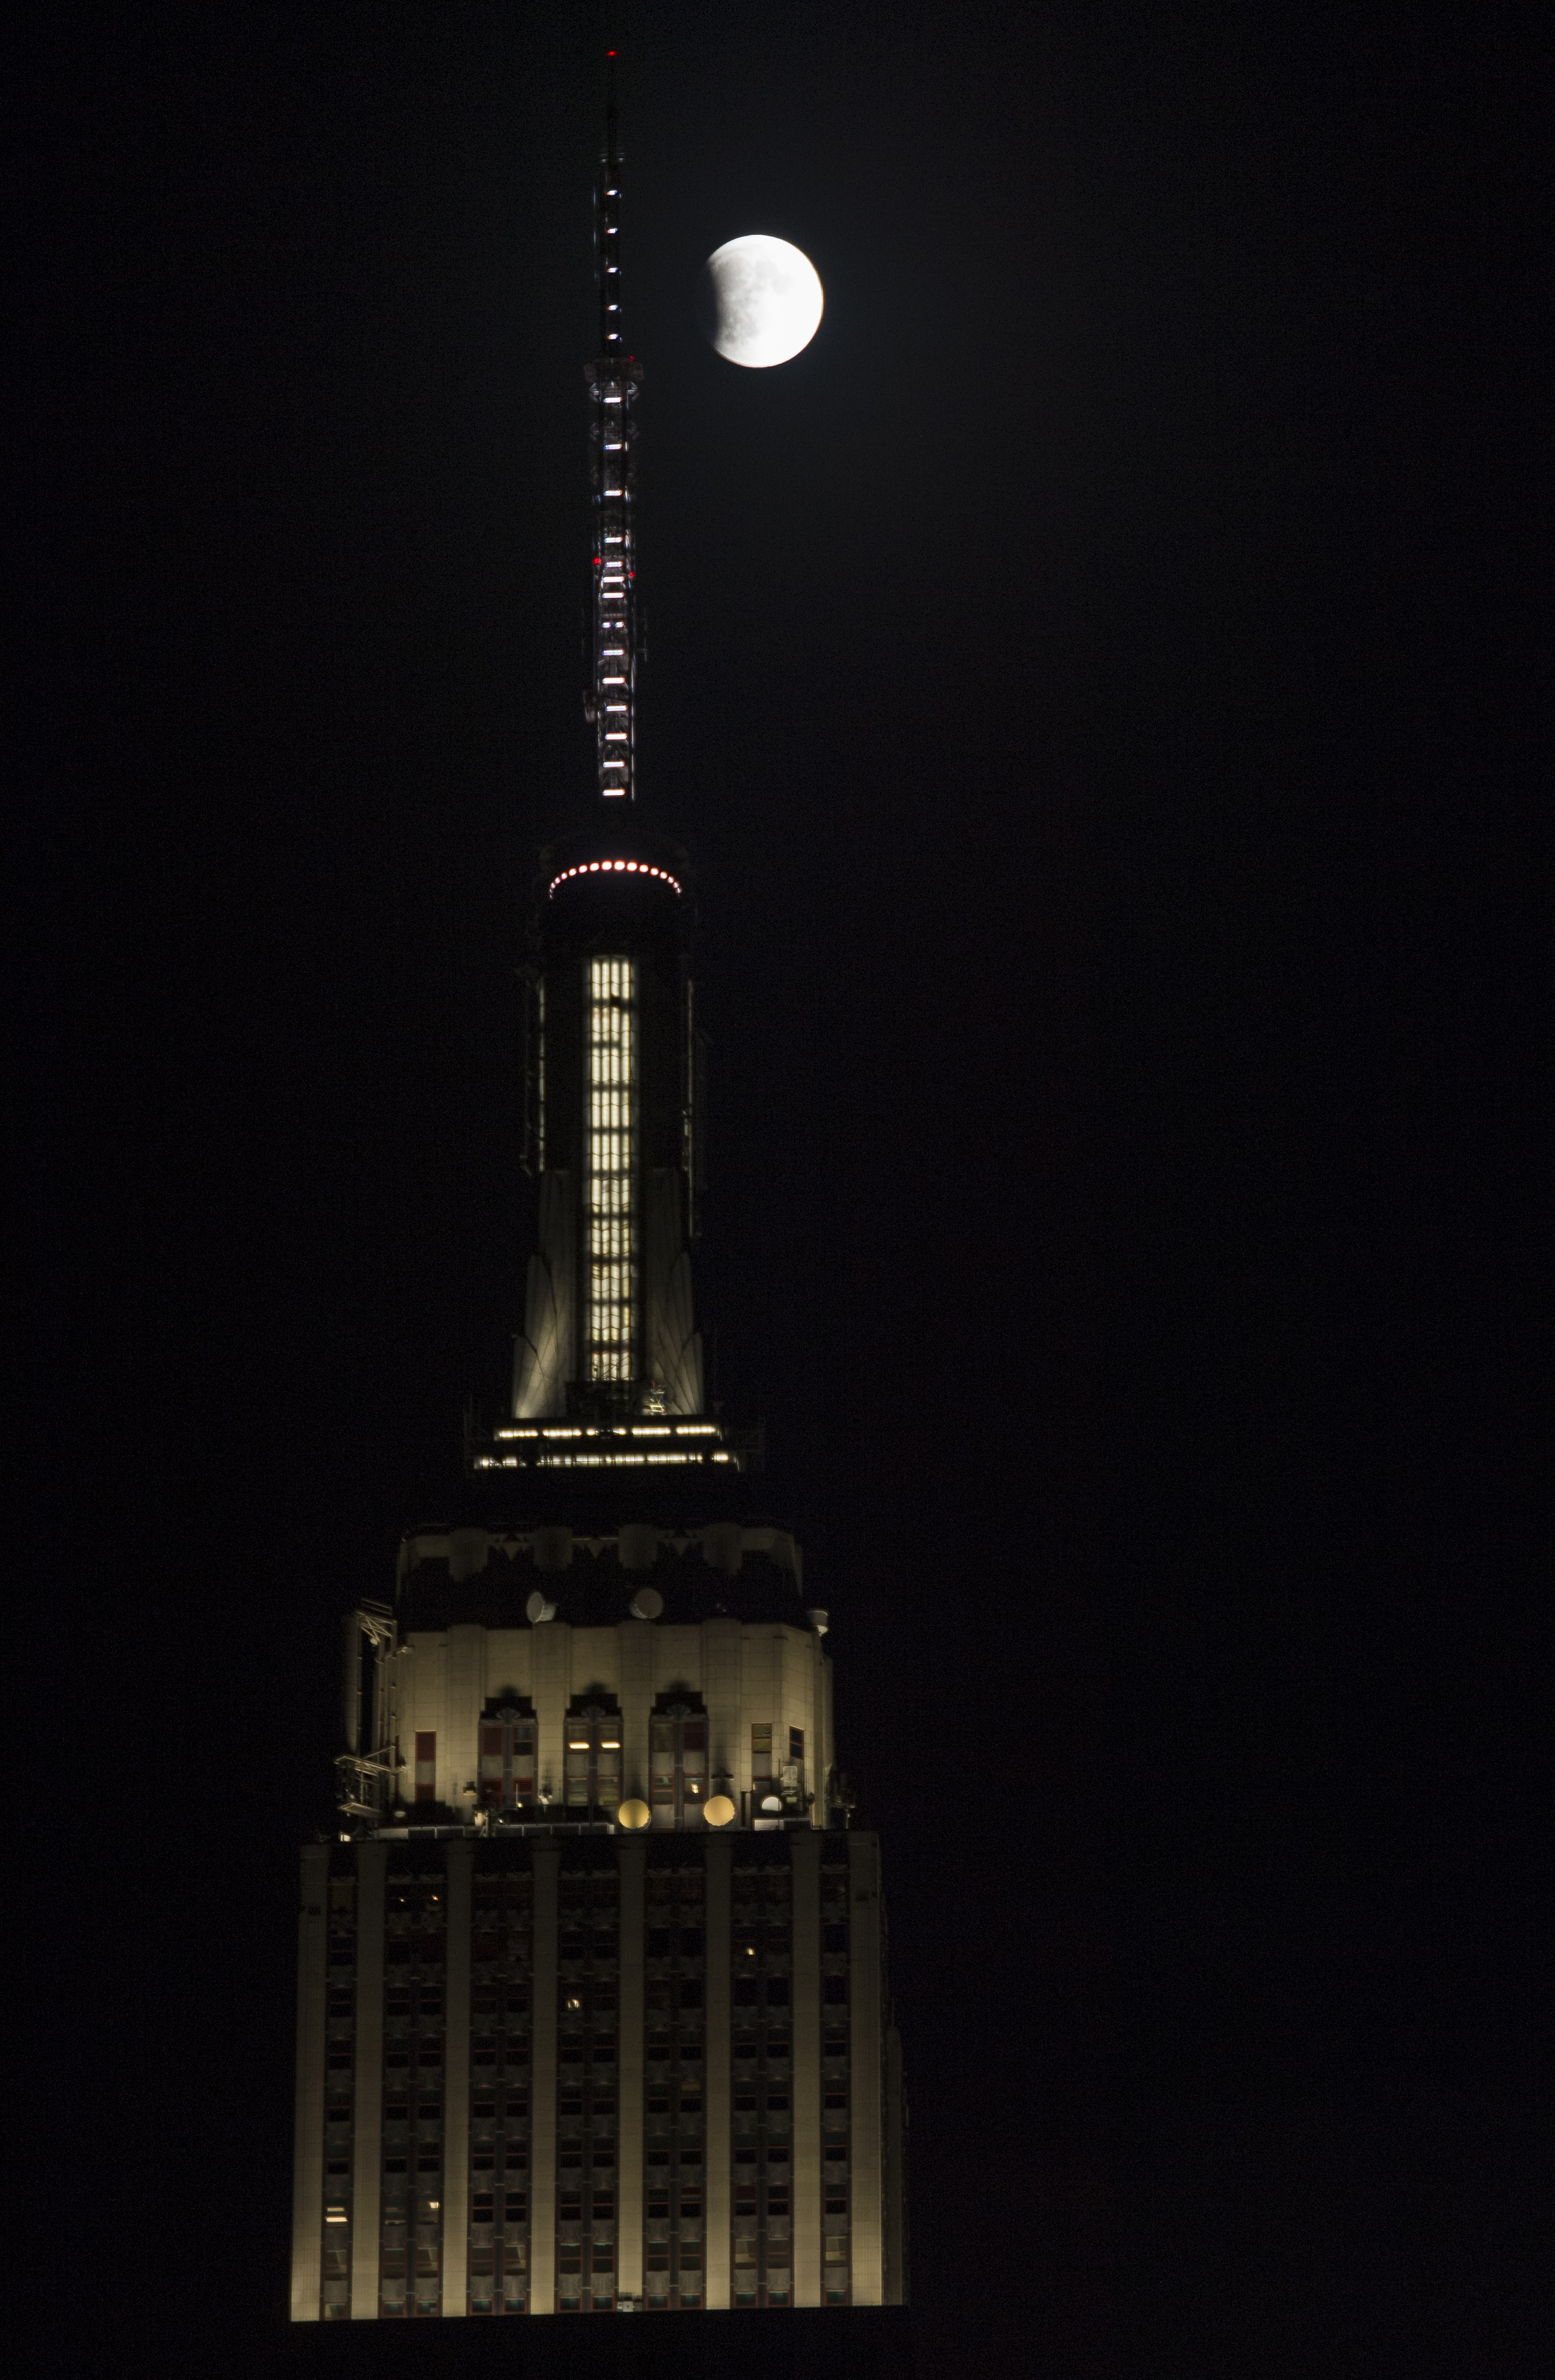 A Perigee Full Moon, Or Supermoon, Is Seen Next To The Empire State Building